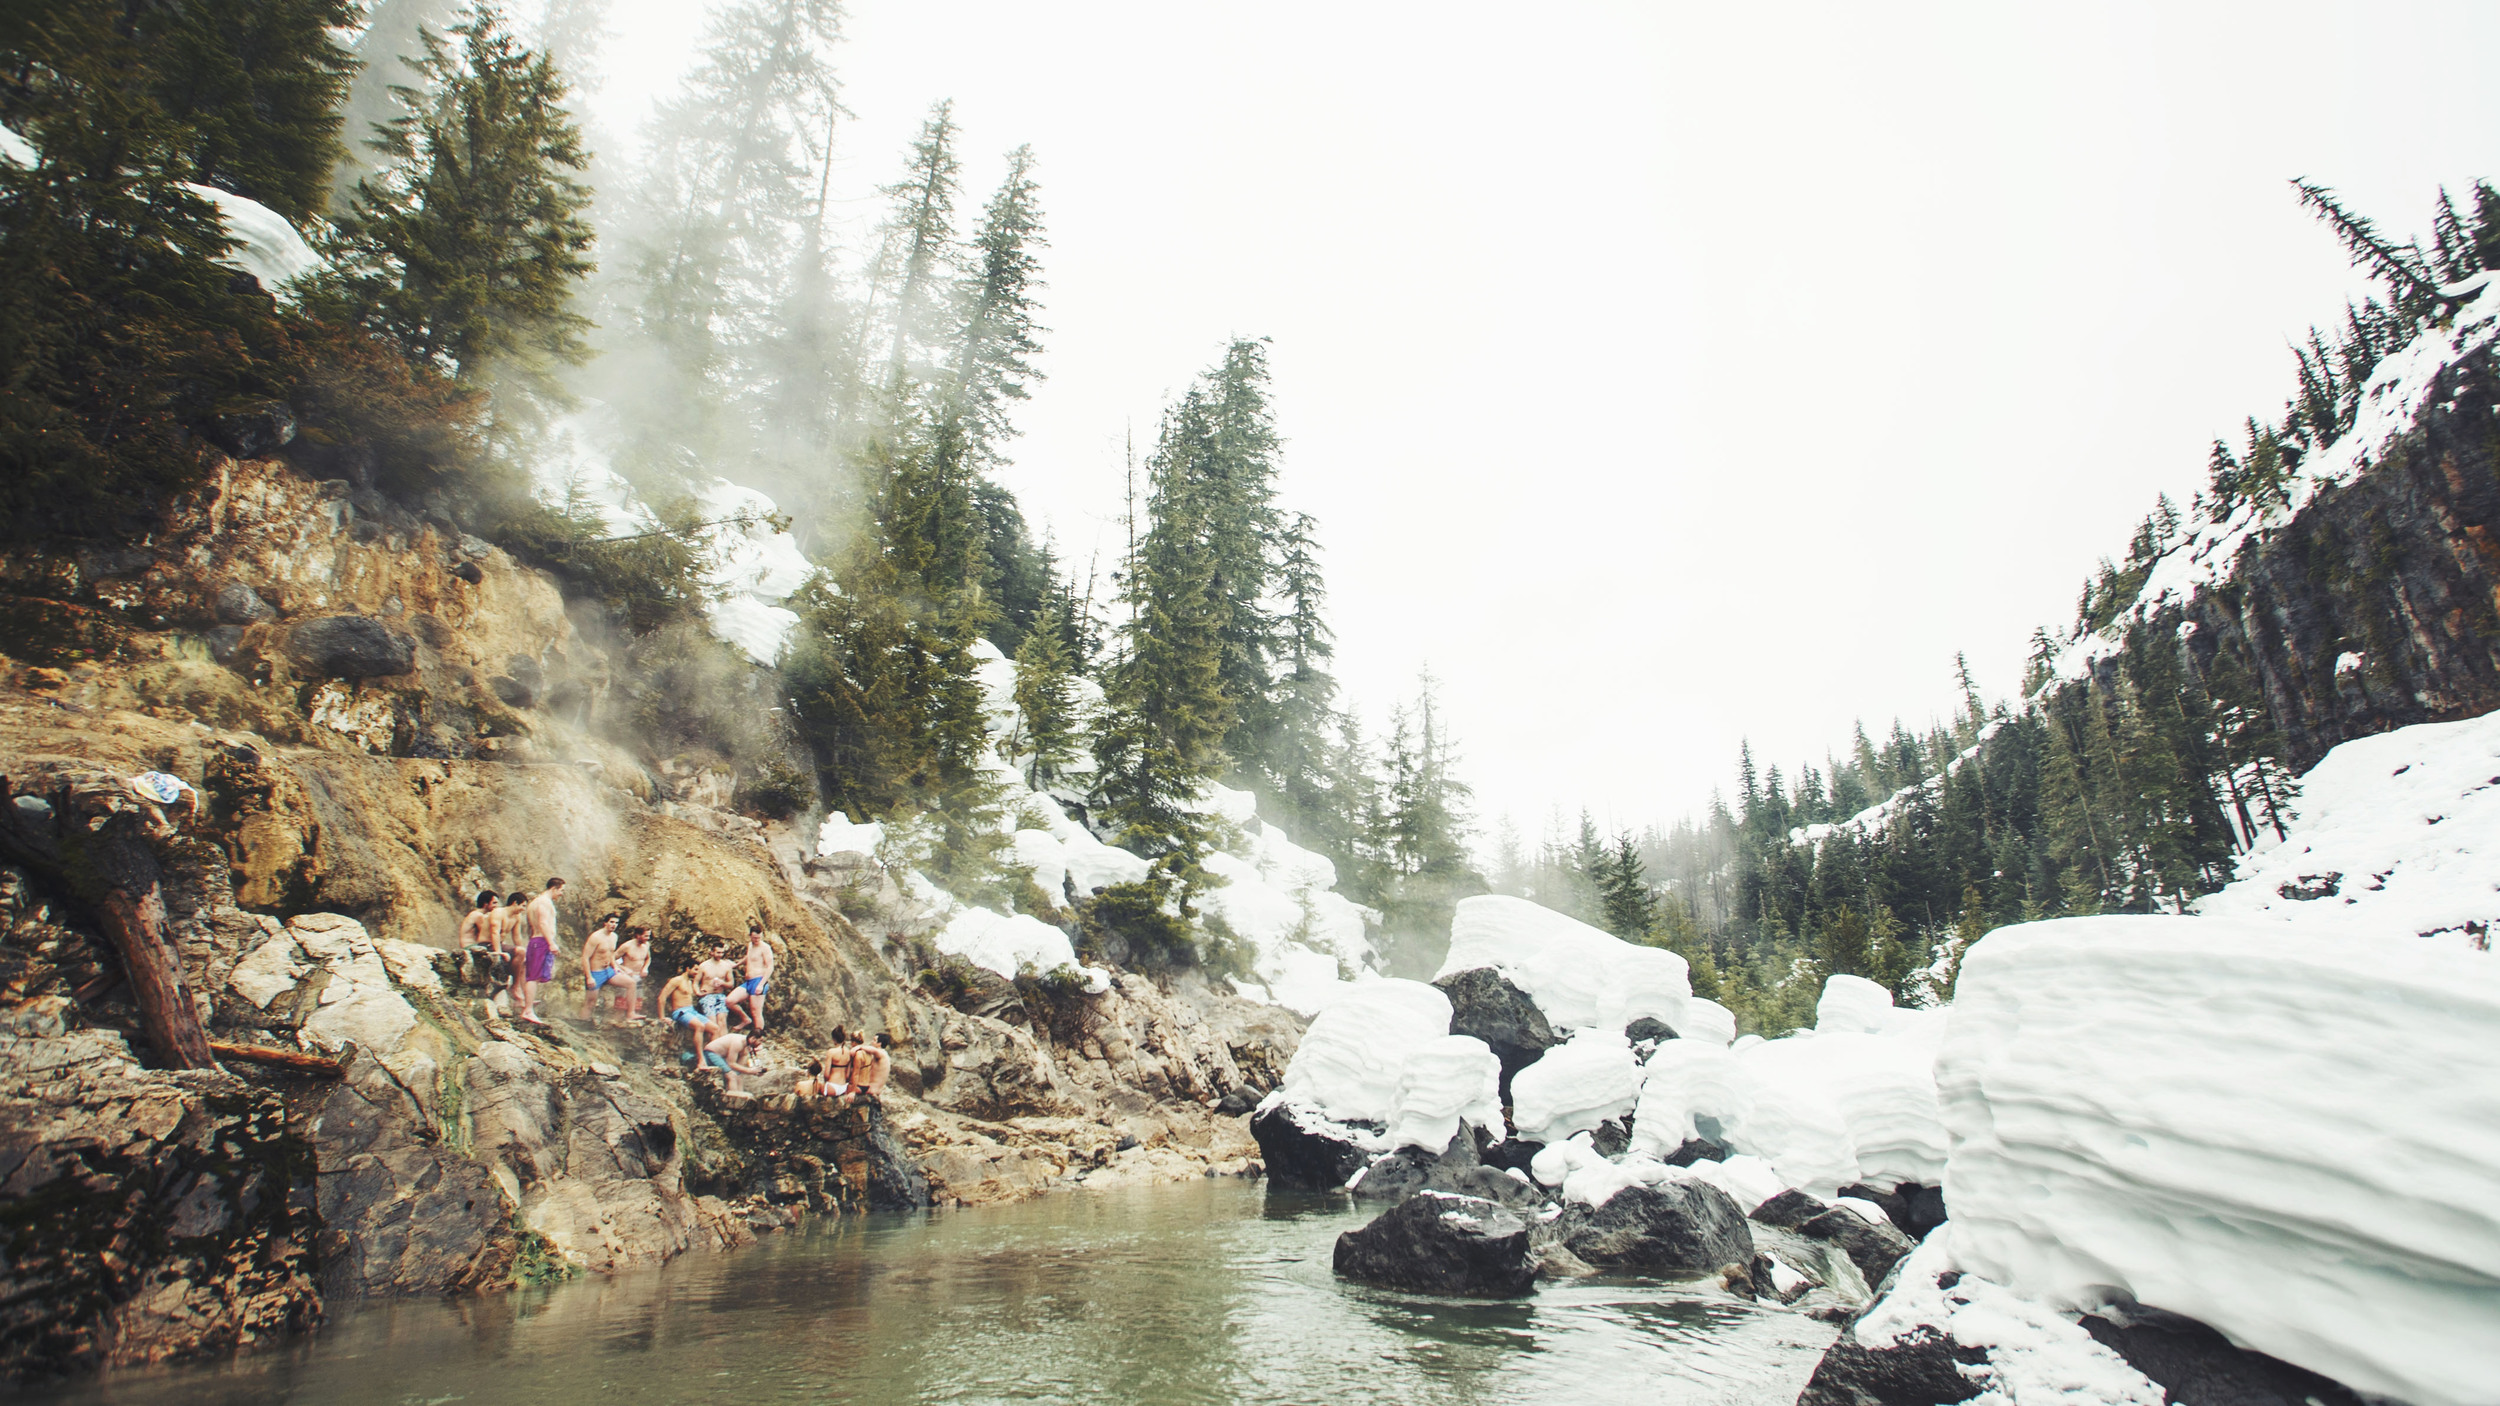 Key-hole hot springs with some of the Whistler crew